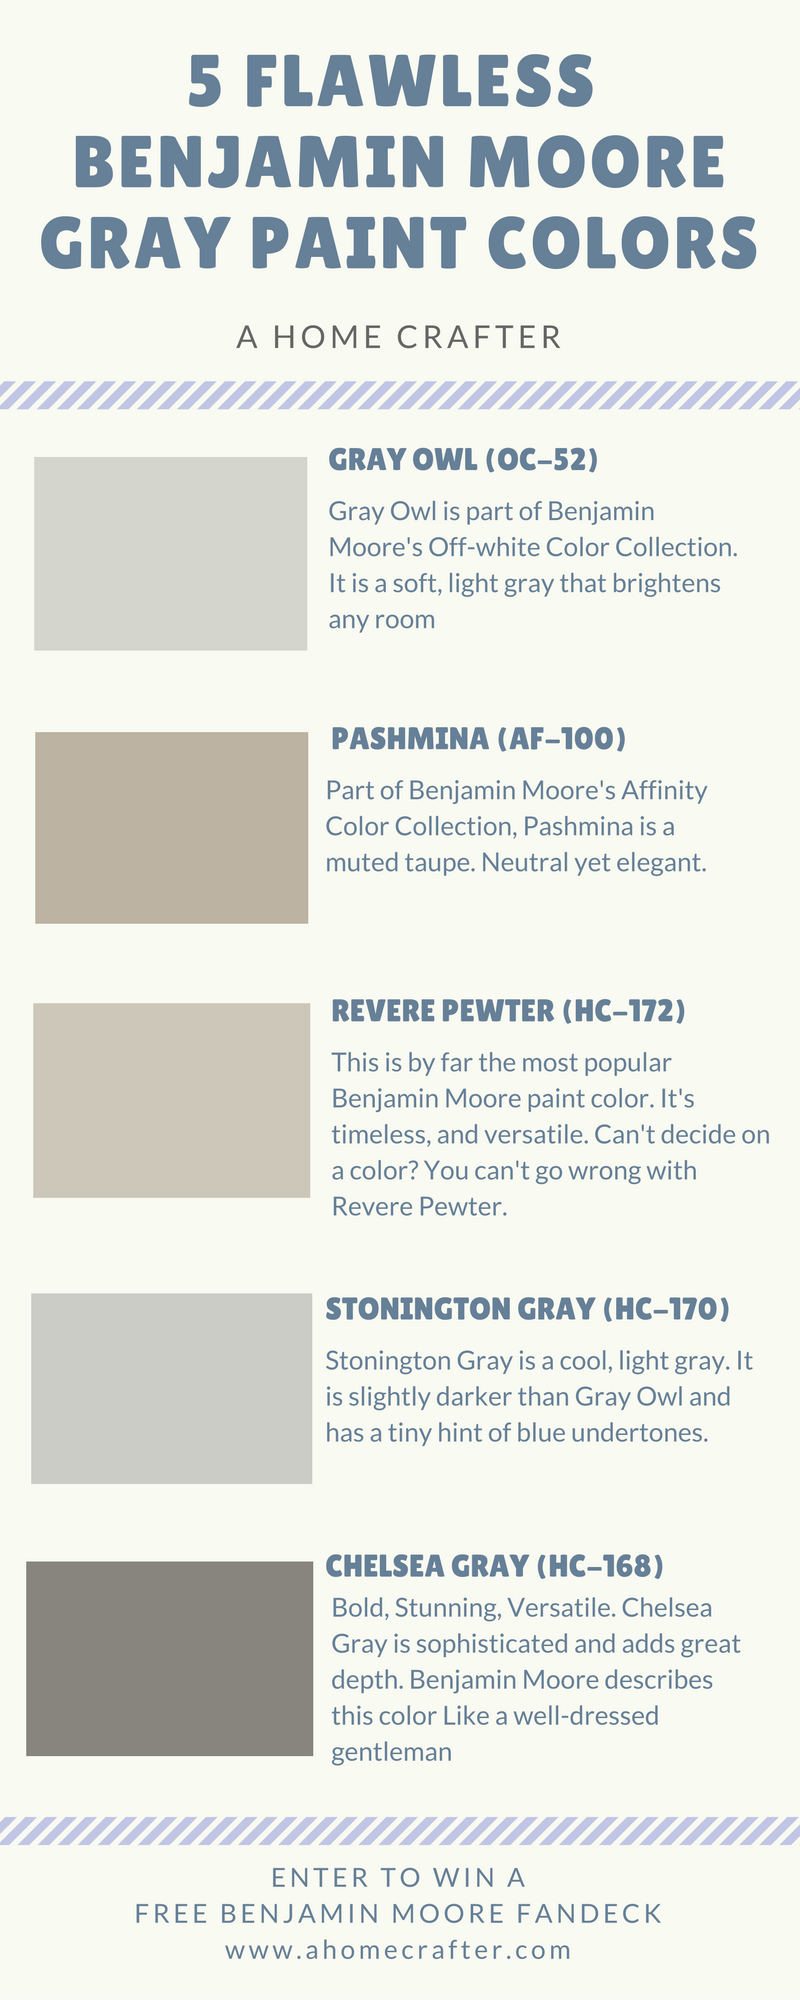 I Personally Love These 5 Benjamin Moore Gray Paint Colors They Are Soft Versatile And Timeless